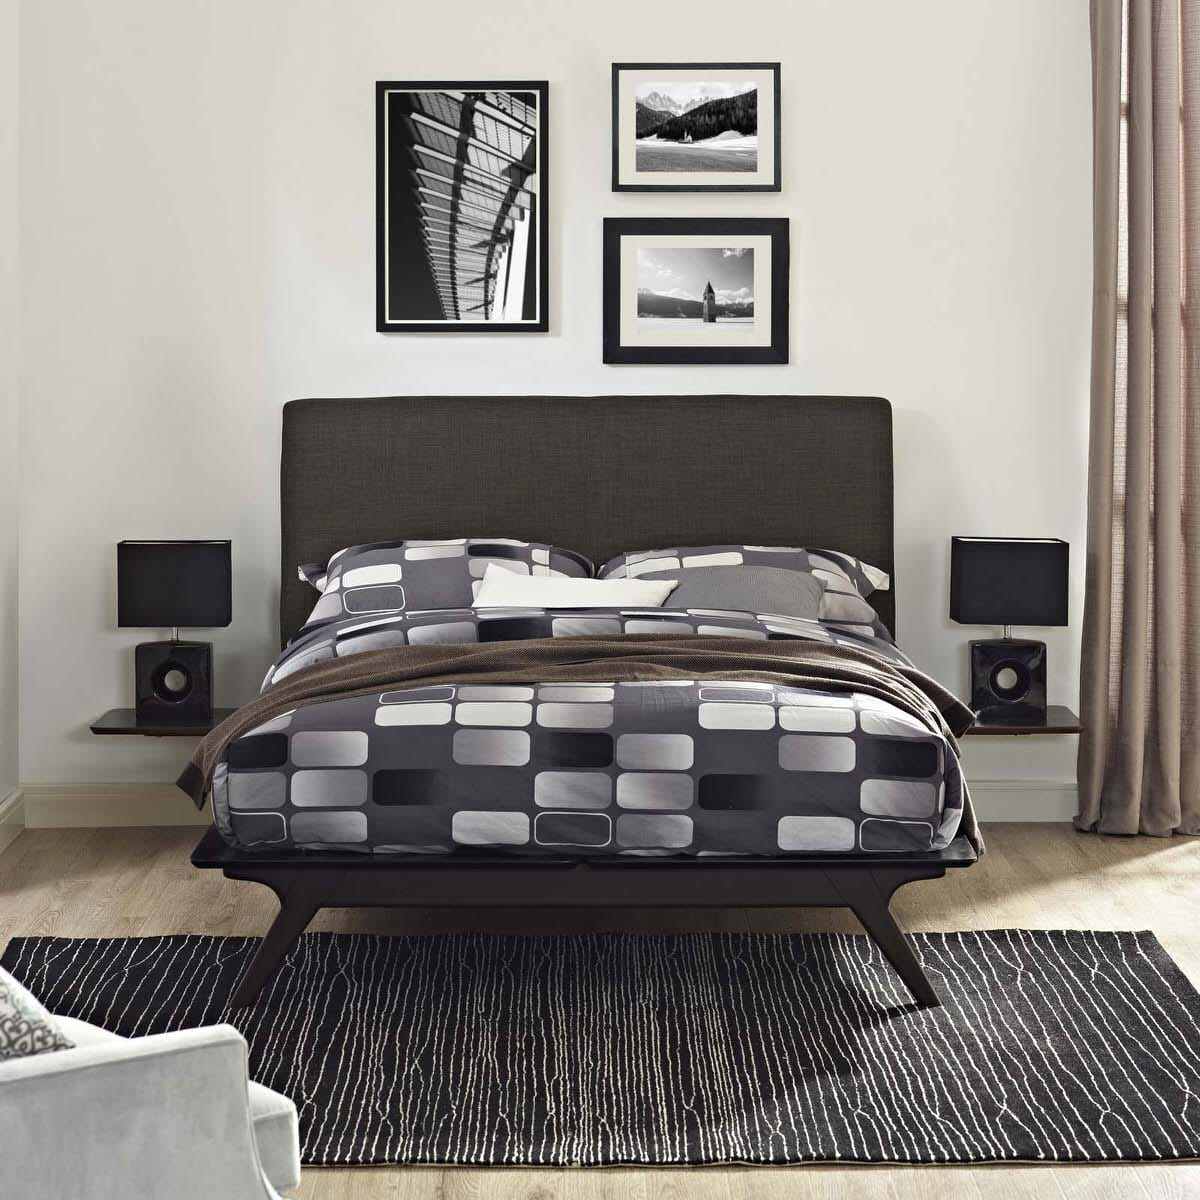 Tracy 3 Piece Queen Bedroom Set Cappuccino Brown by Modern Living